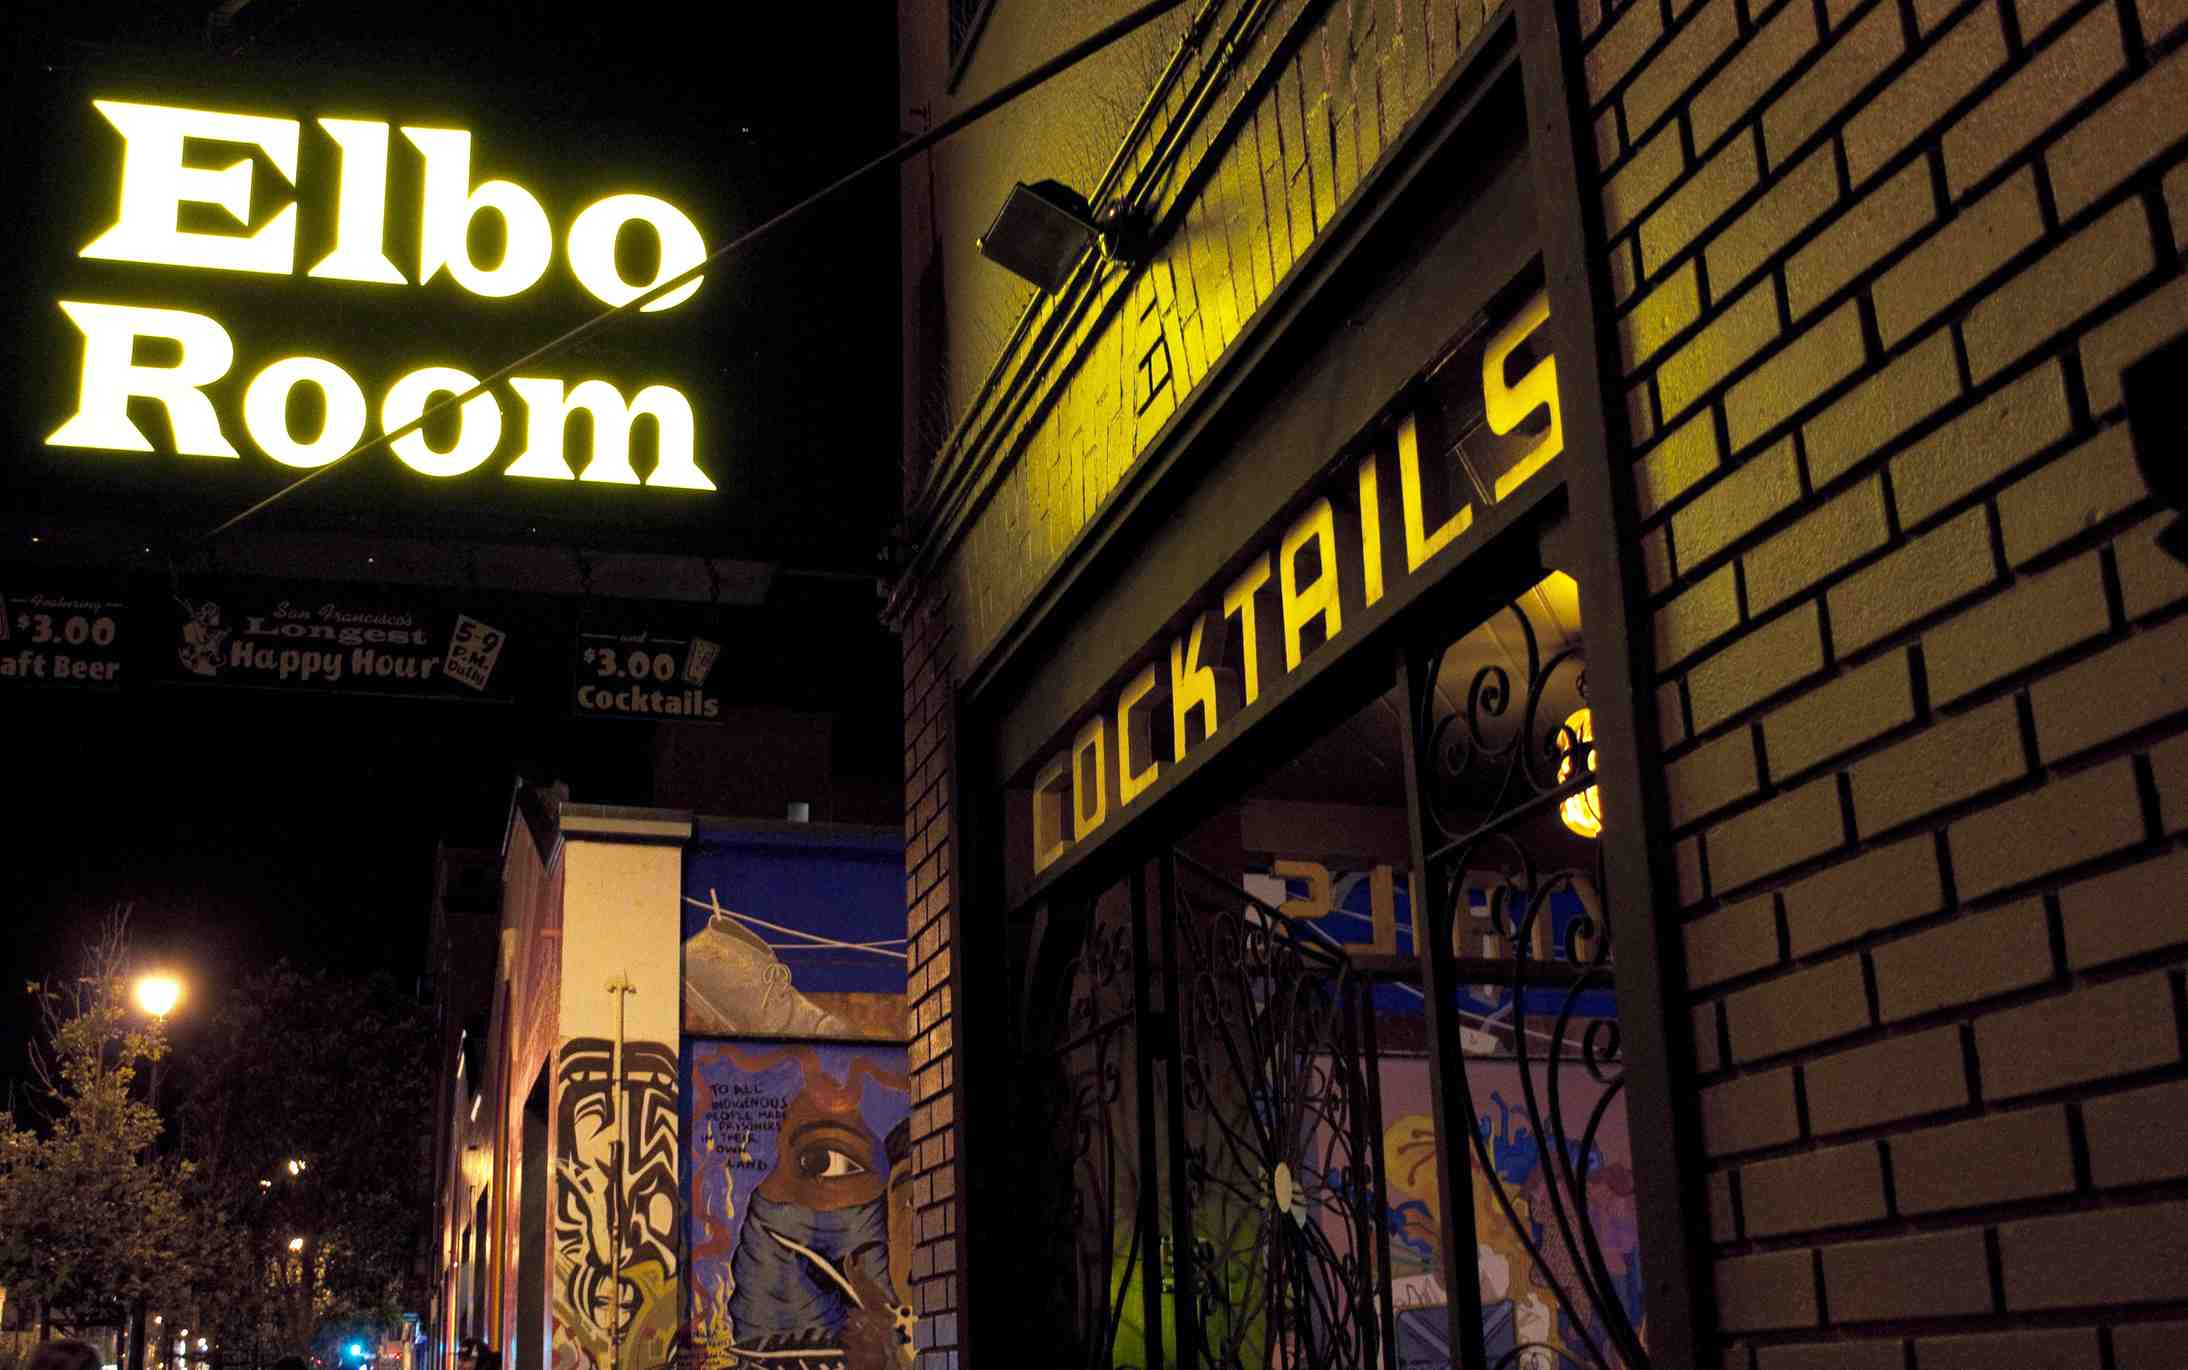 Elbo Room nightclub on Valencia Street in the Mission District